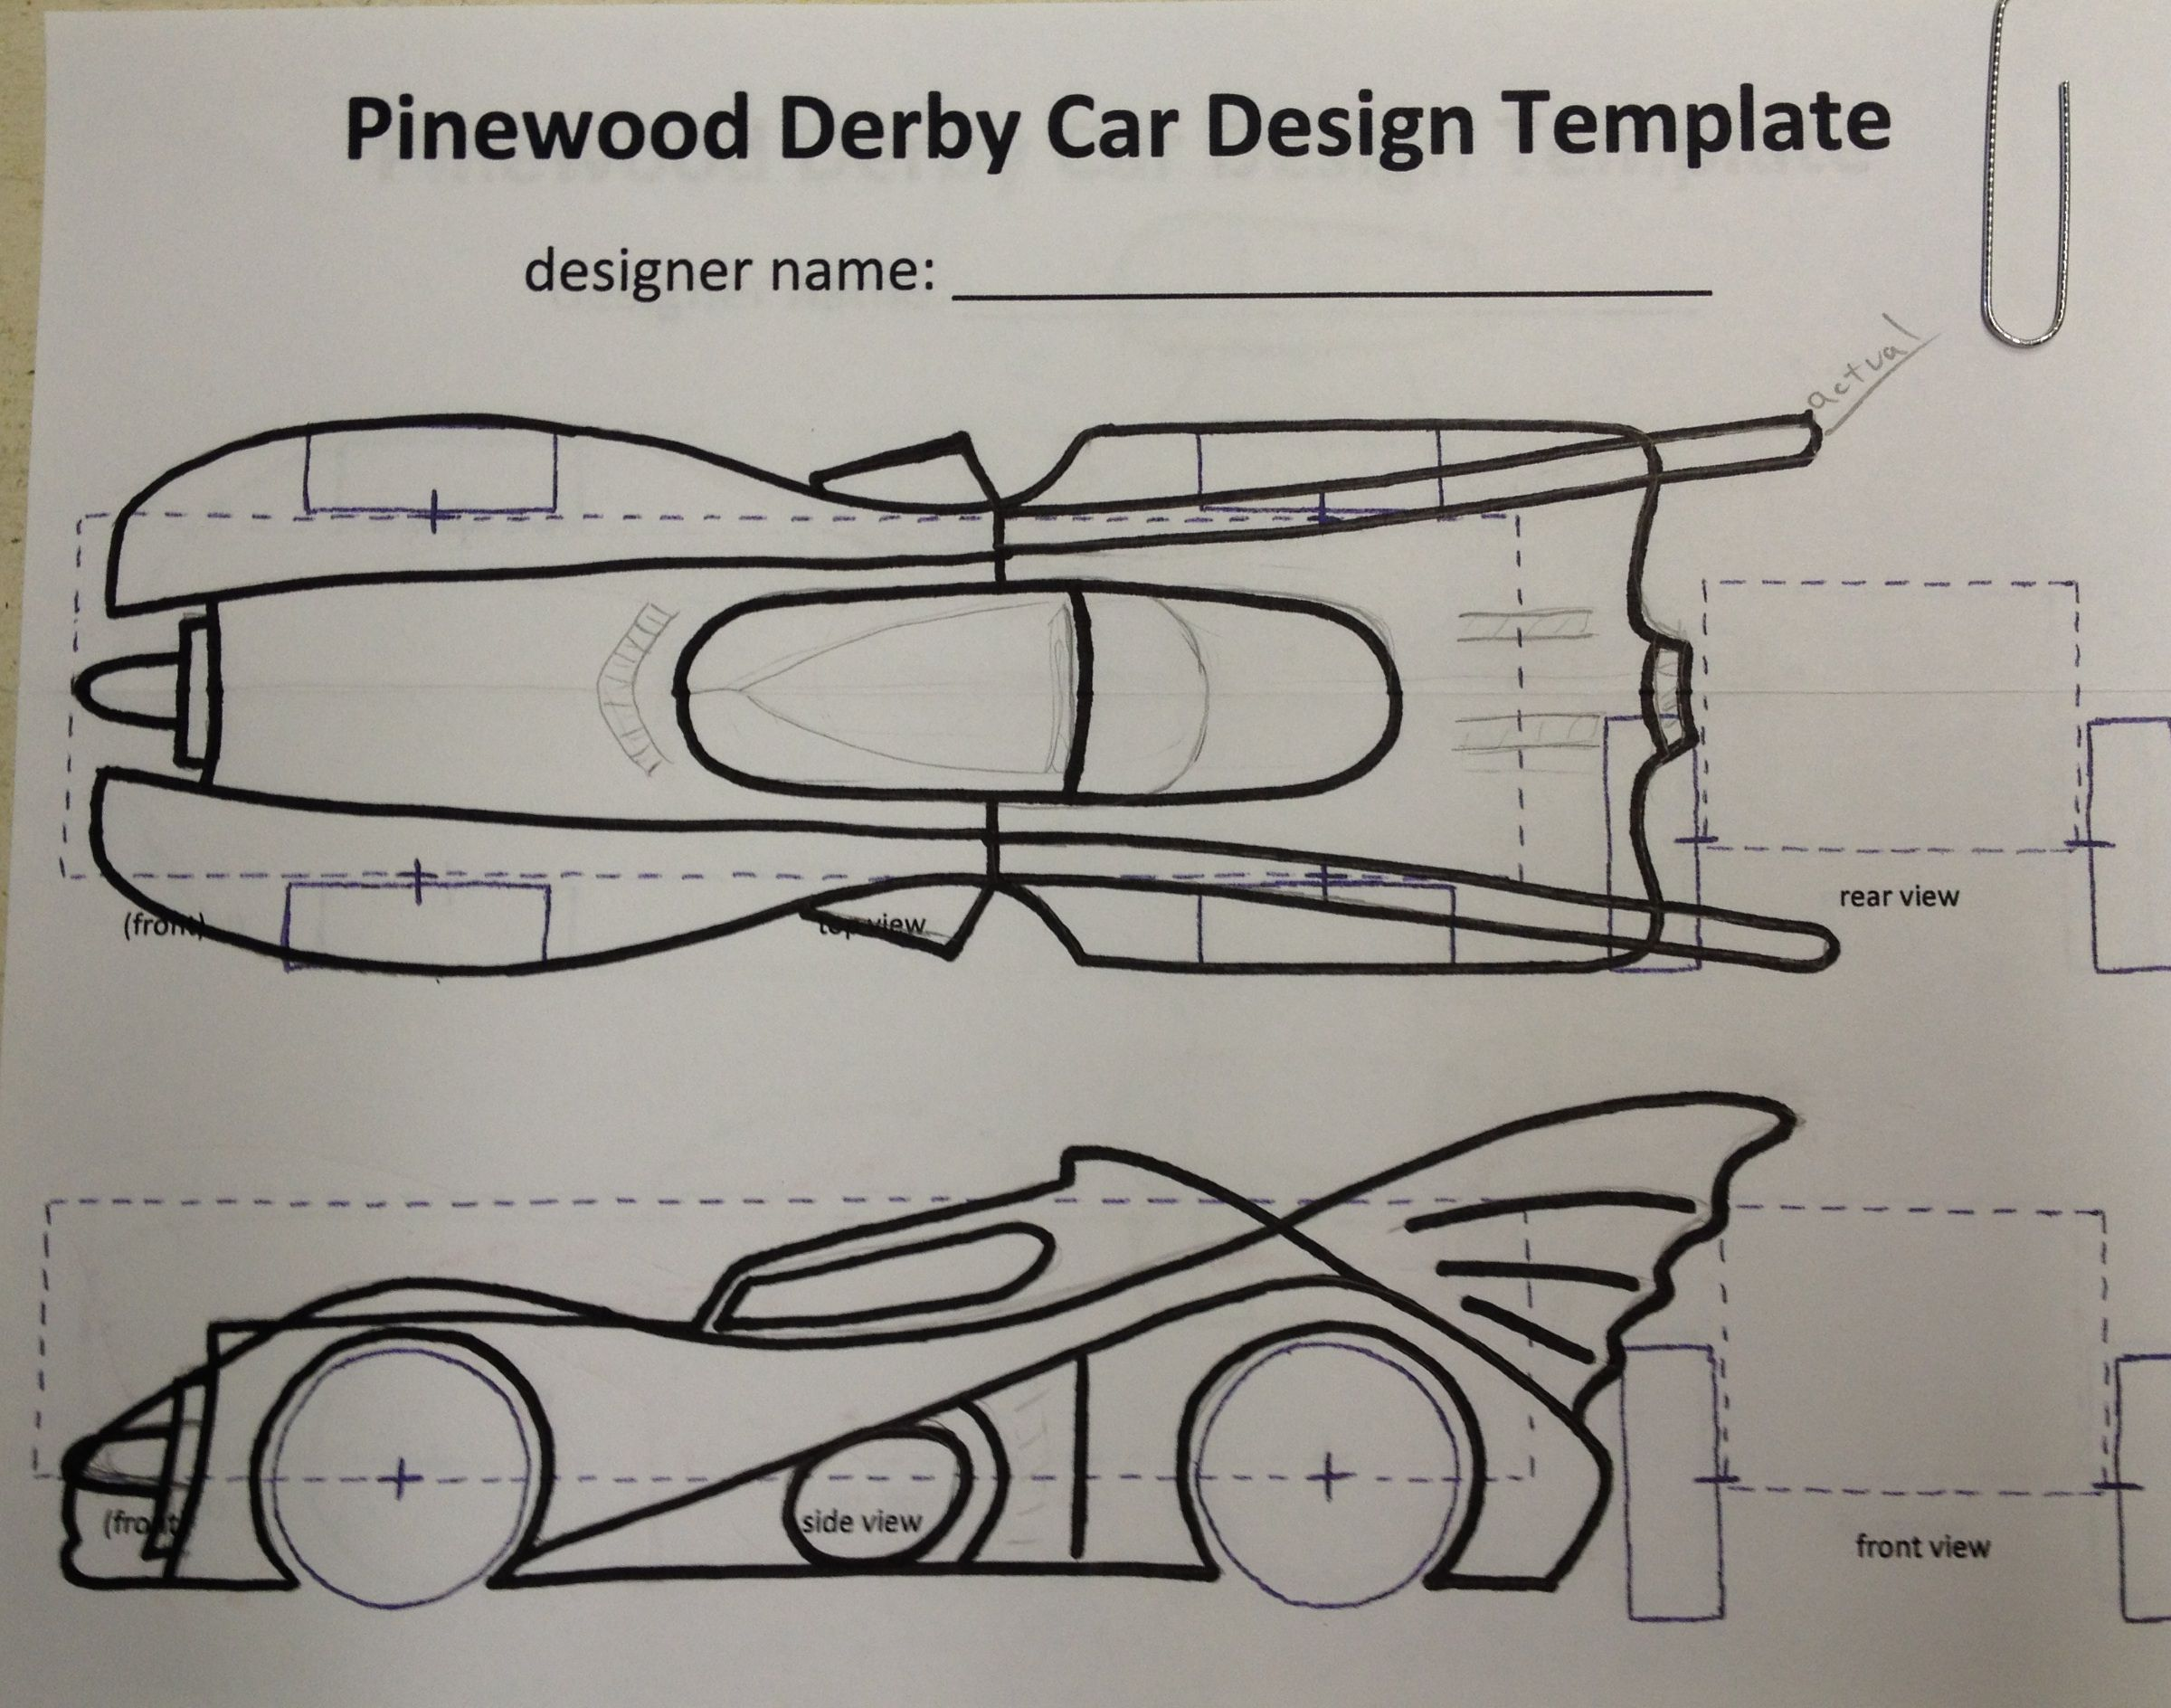 bsa pinewood derby templates - i started with some scrap pine 1 6 wood that i had laying